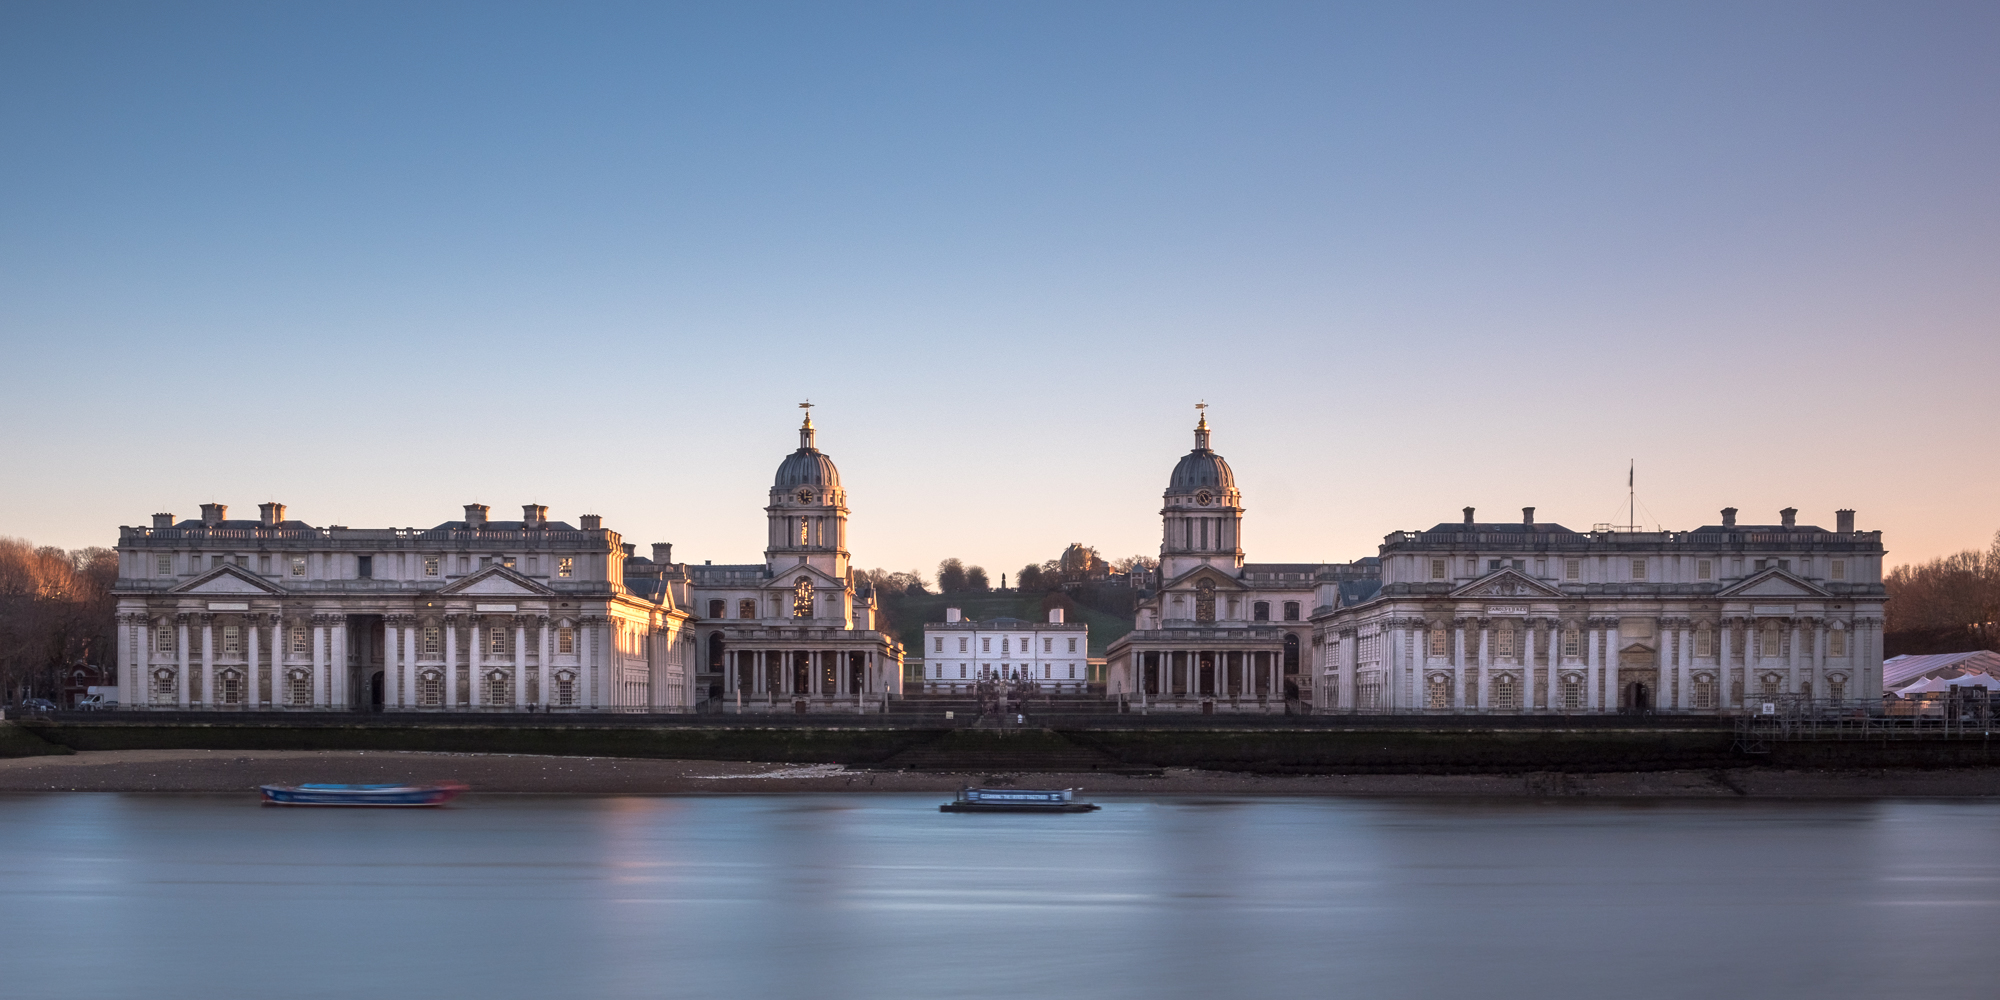 A long exposure photo of the greenwich naval college by trevor sherwin